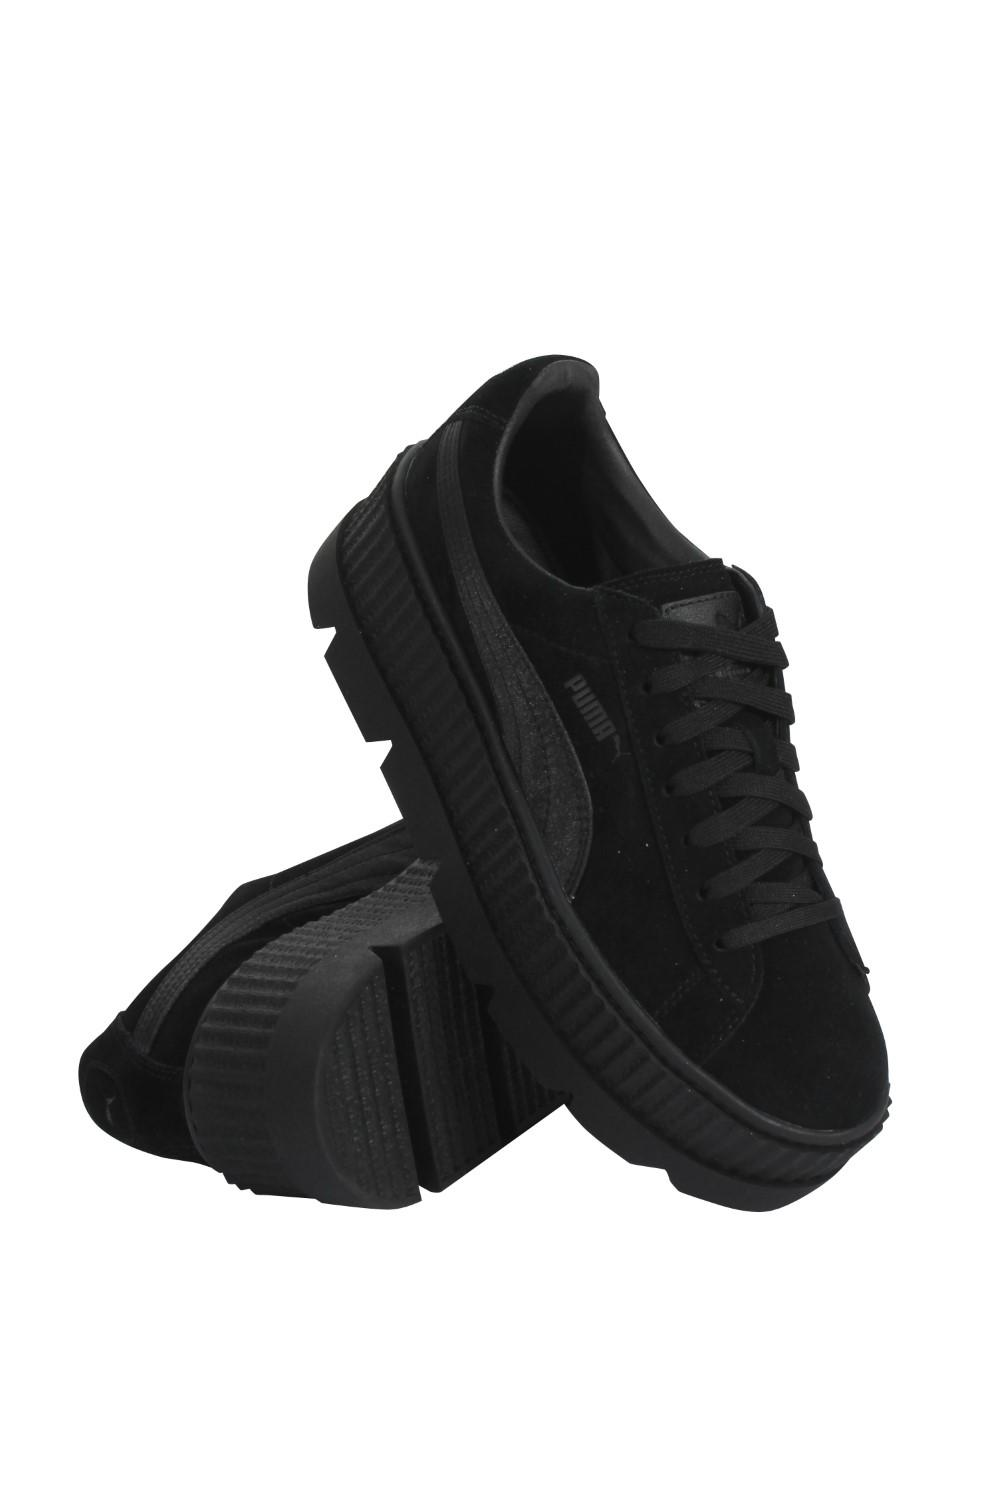 buy online fd626 9d55c Lyst - PUMA Fenty By Rihanna Suede Cleated Creeper Casual ...